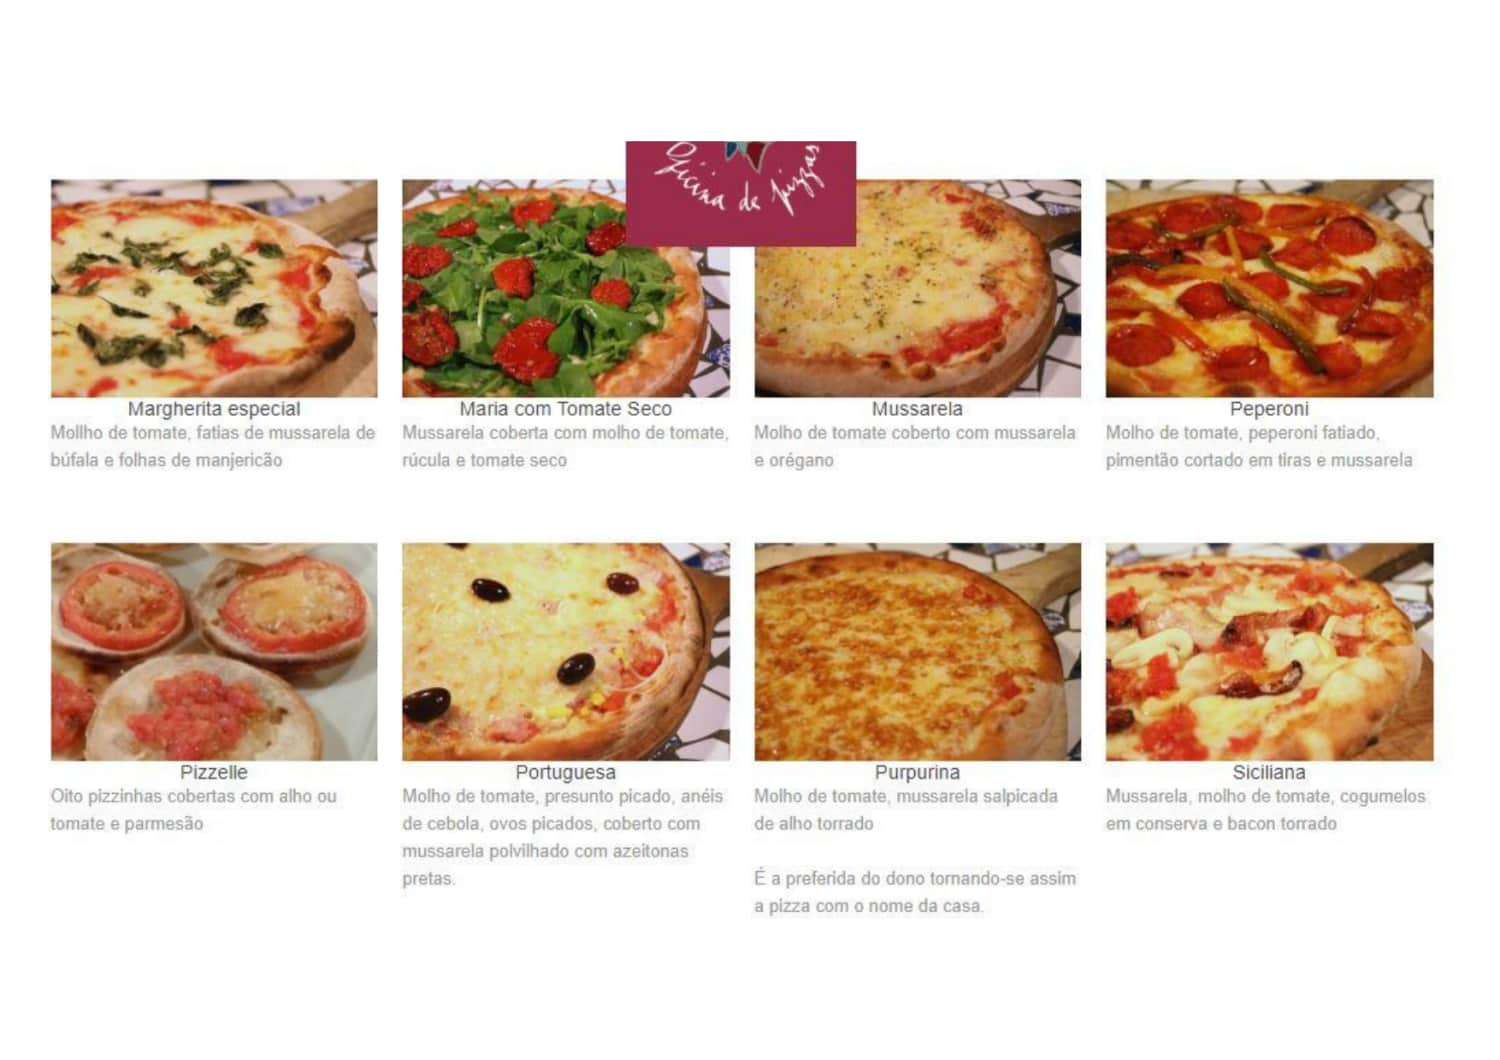 Menu do restaurante Purpurina Oficina de Pizzas - Página 3